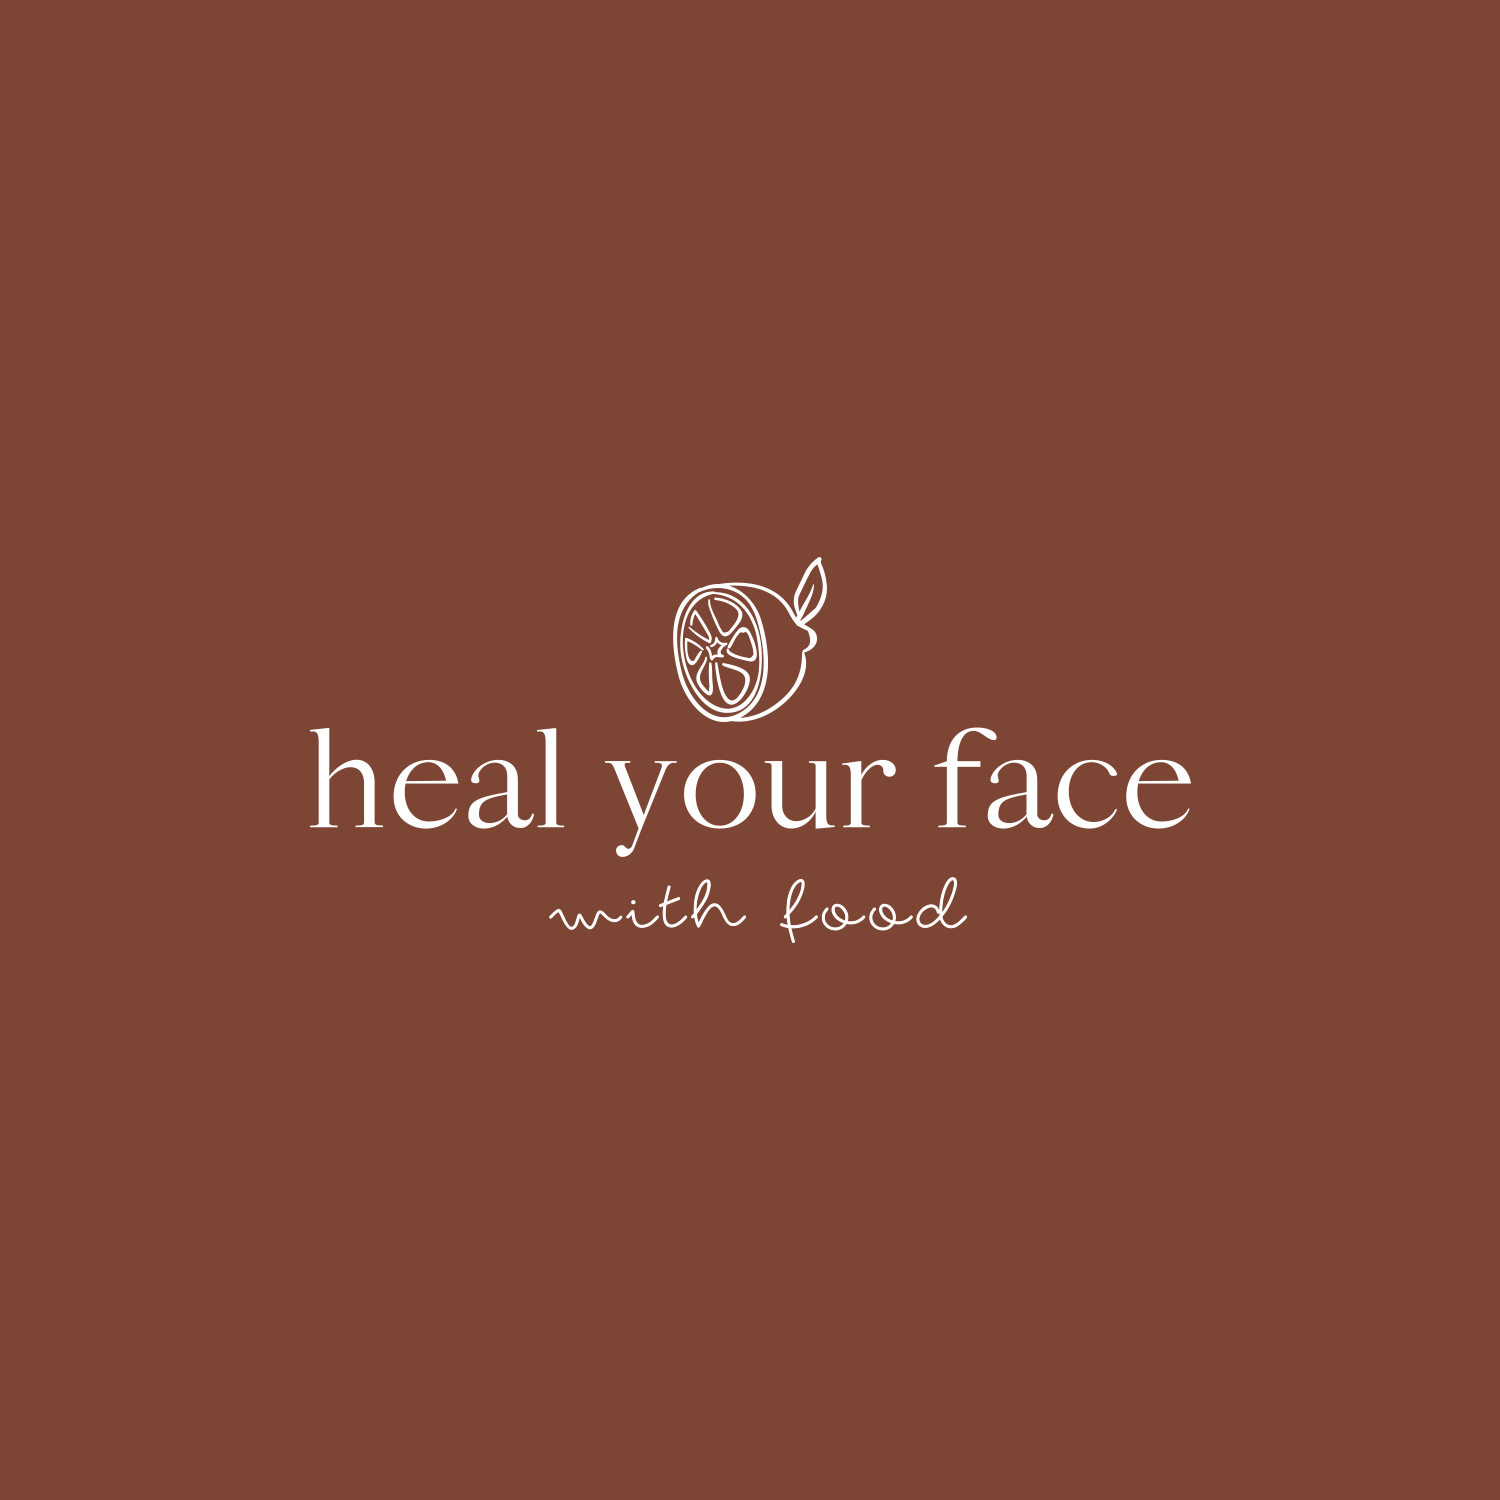 8_healyourface